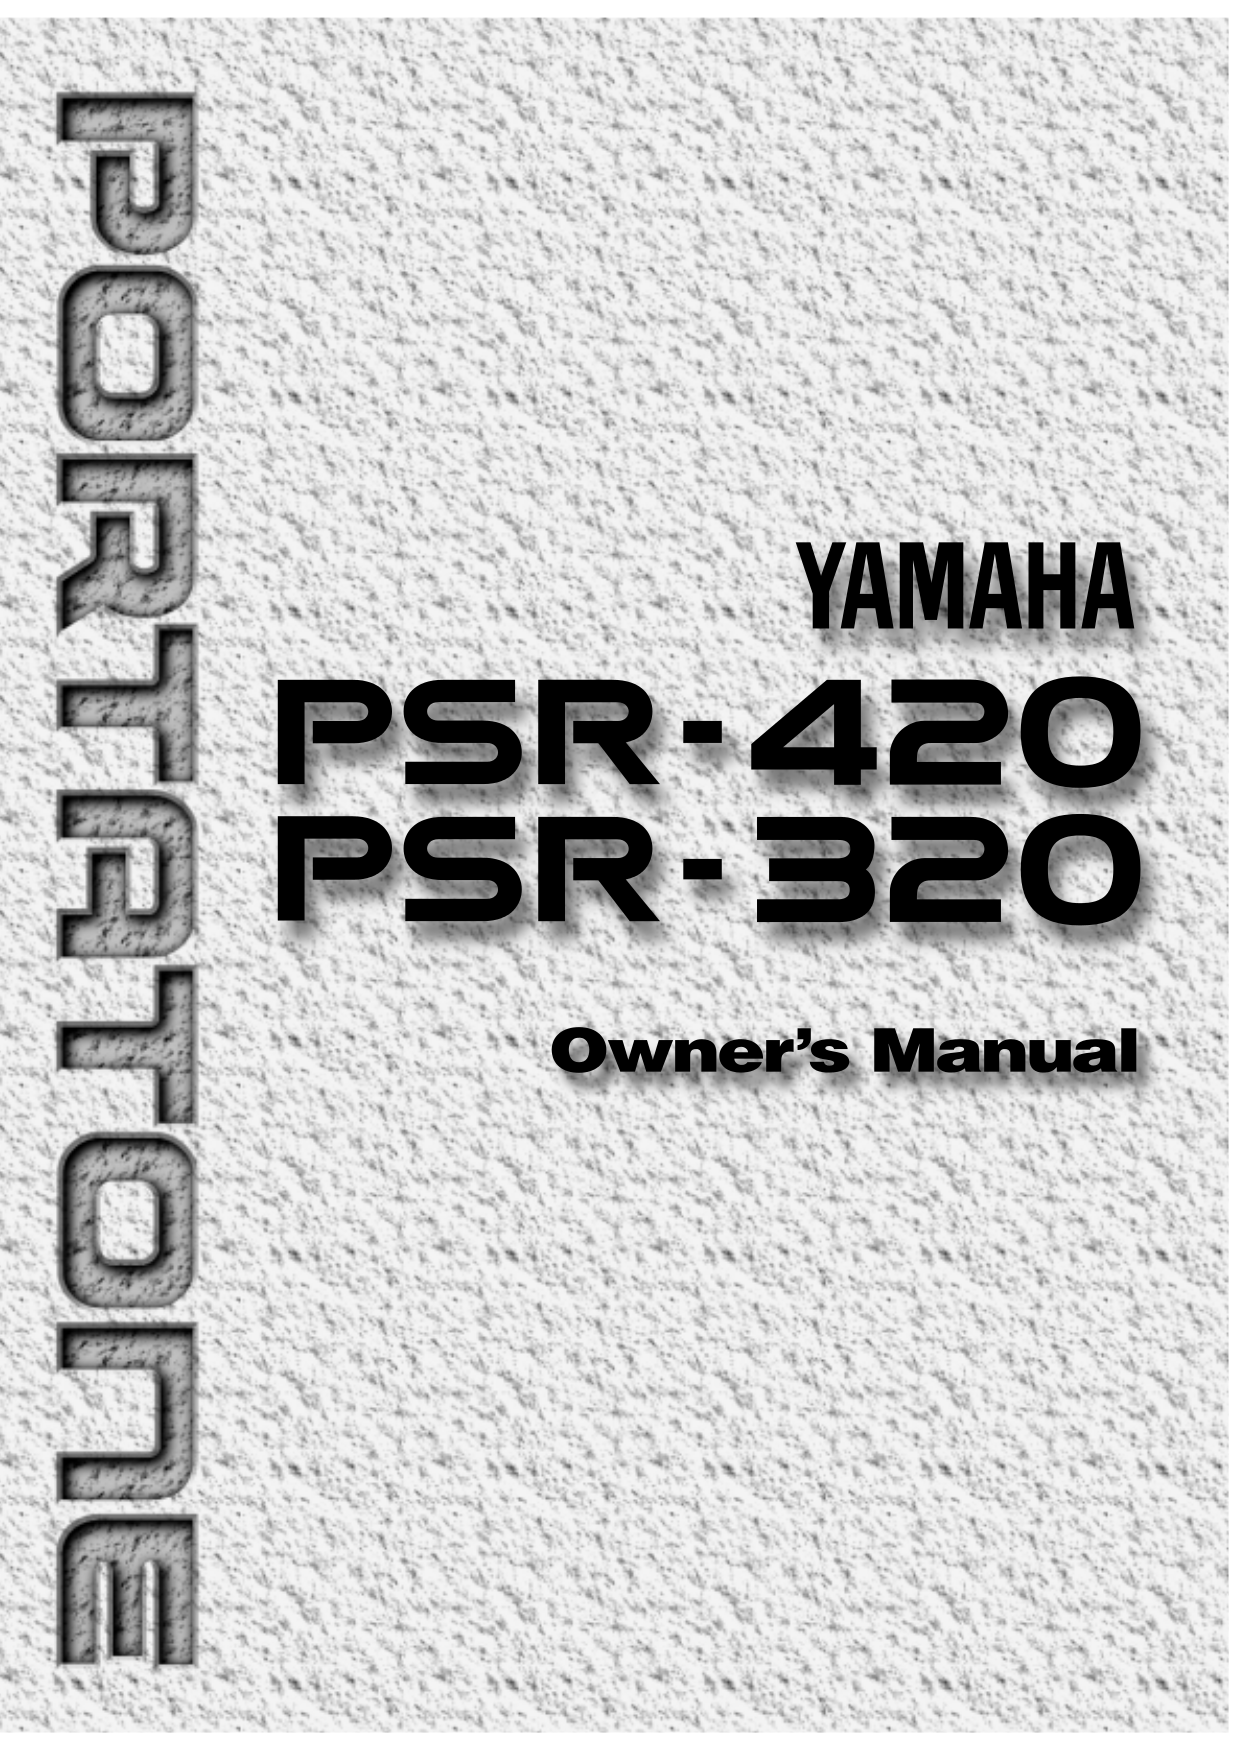 Download free pdf for Yamaha PSR-320 Music Keyboard manual